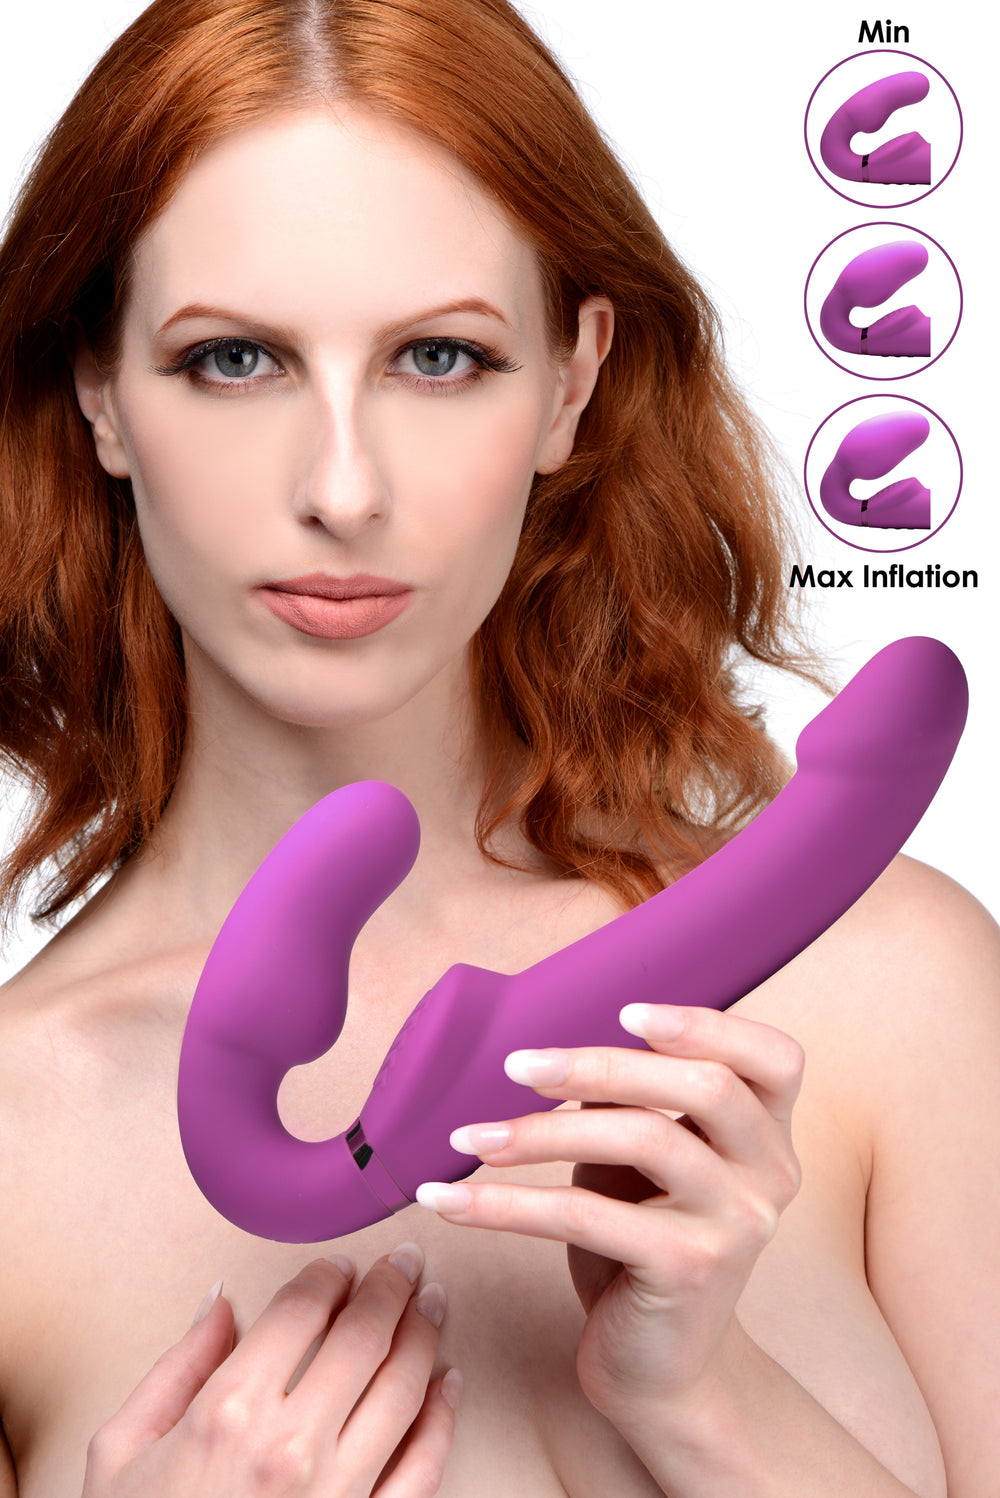 Worlds First Remote Control Inflatable Vibrating Silicone Ergo Fit Strapless Strap-On - Fun and Kinky Sex Toys